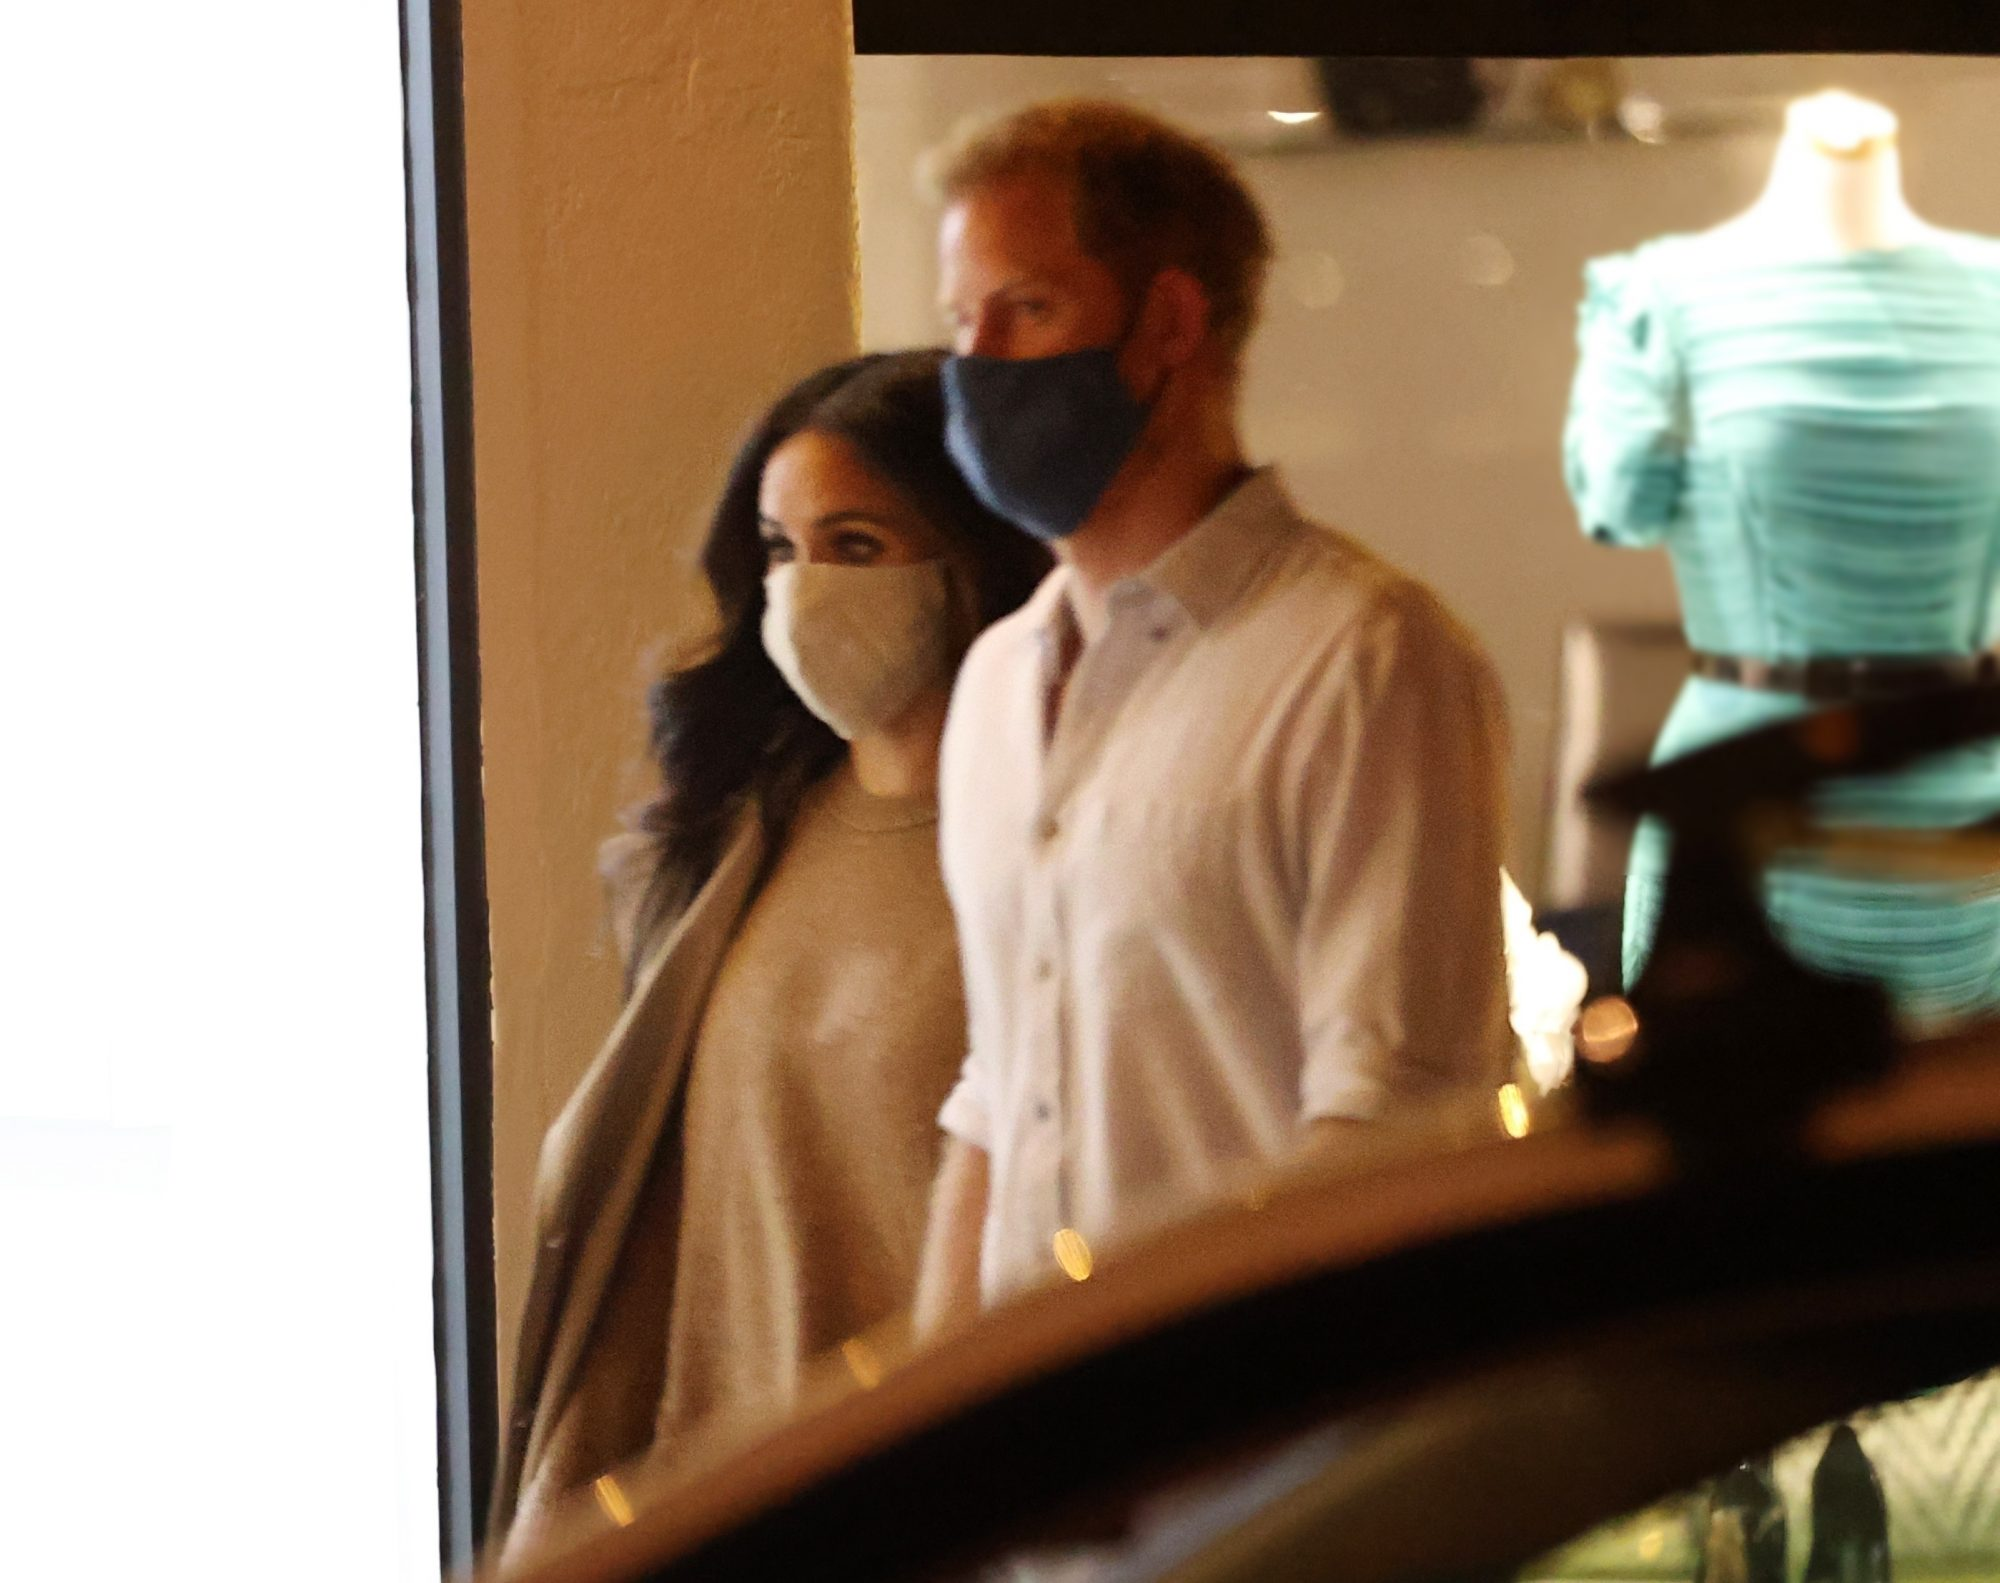 Prince Harry and Meghan Markle are spotted enjoying a double date with friends Katherine McPhee and David Foster in Santa Barbara.